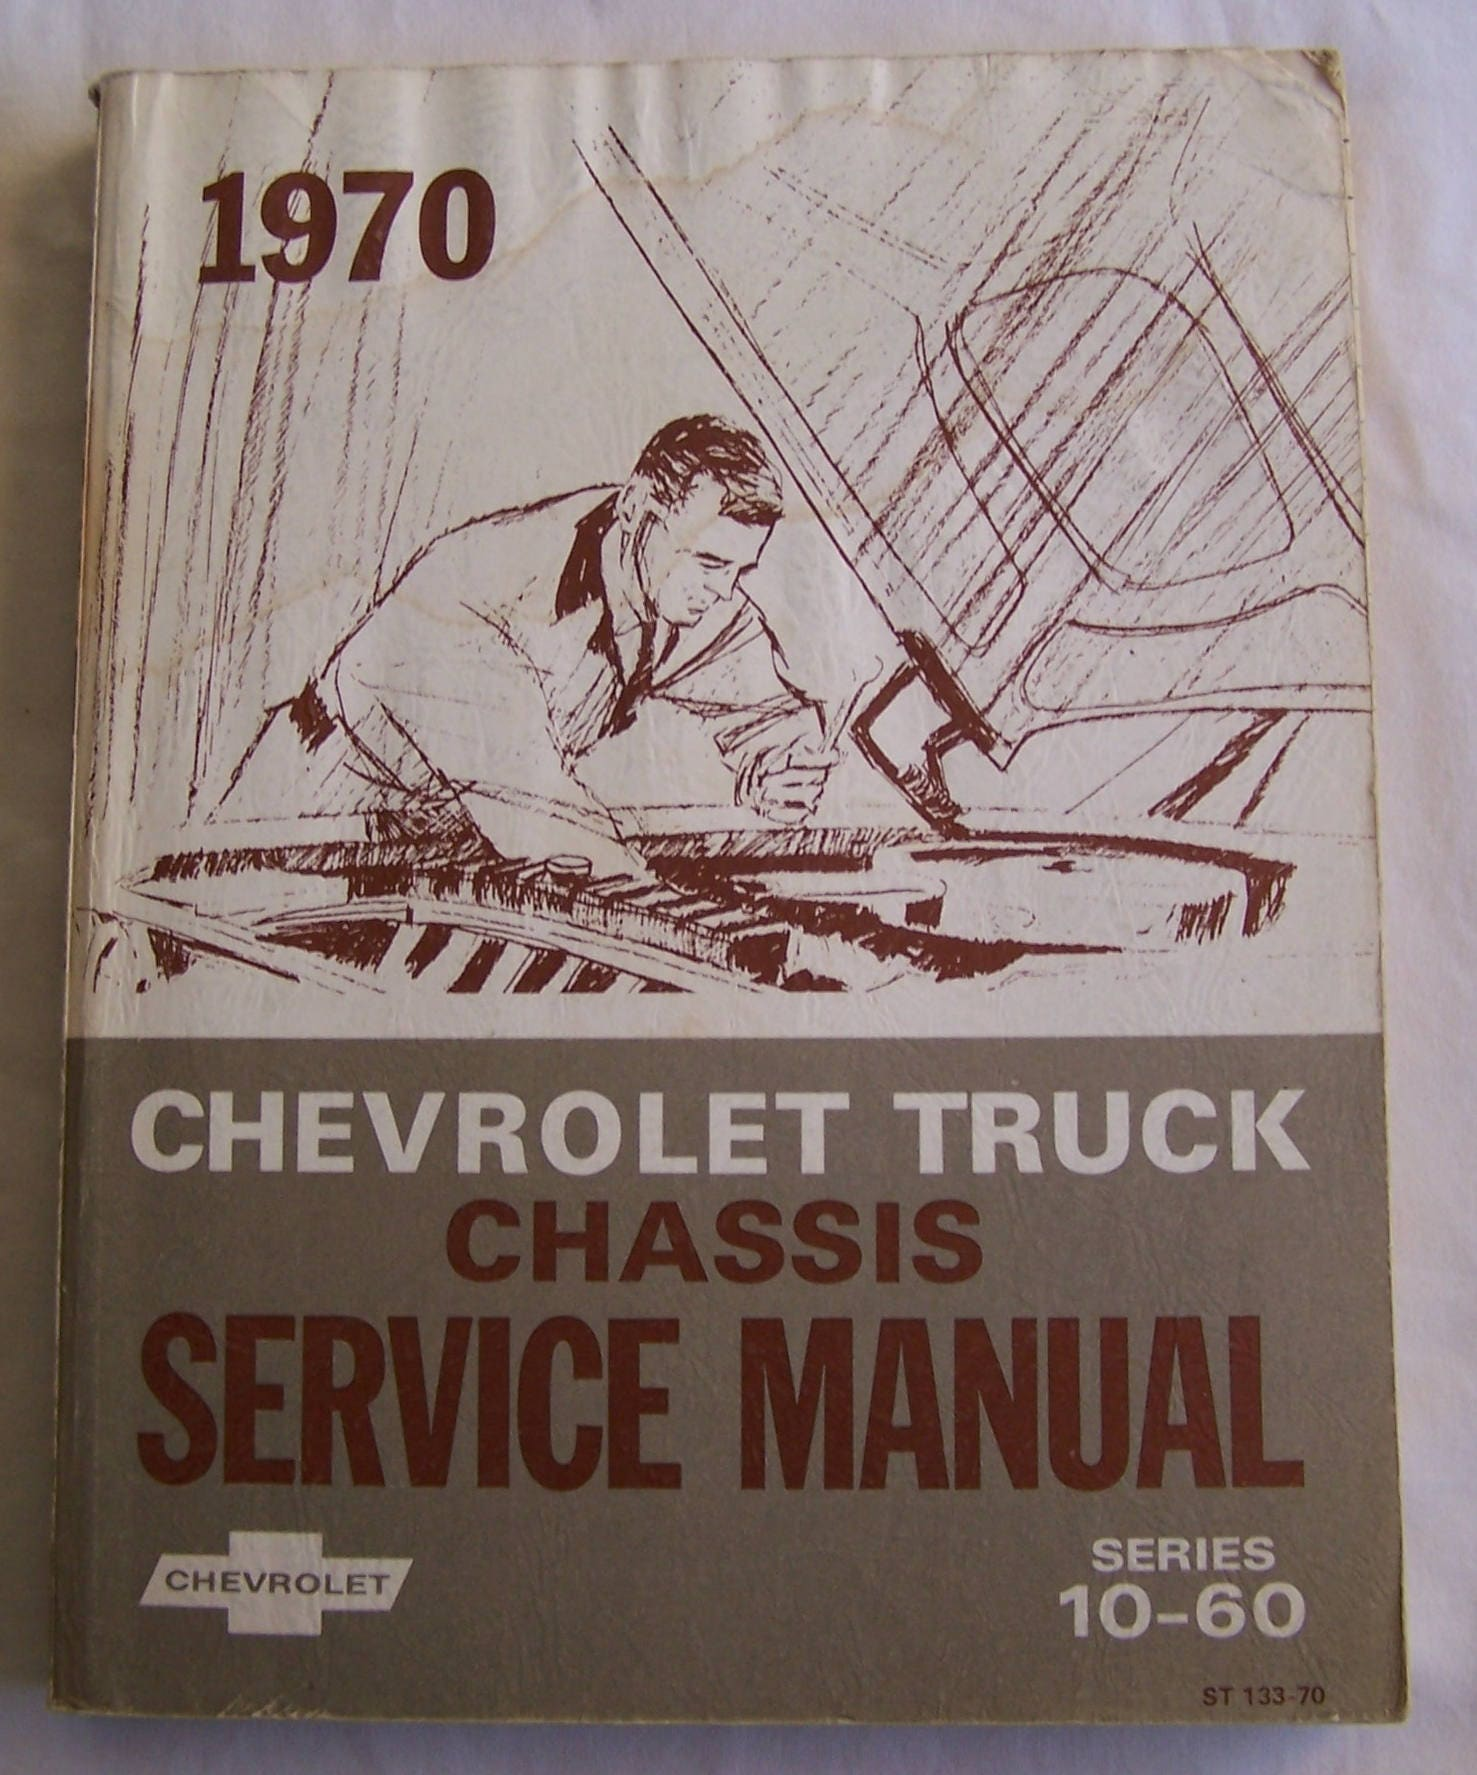 Chevrolet Truck Chassis GM Service Manual, 1970 Series 10 - 60